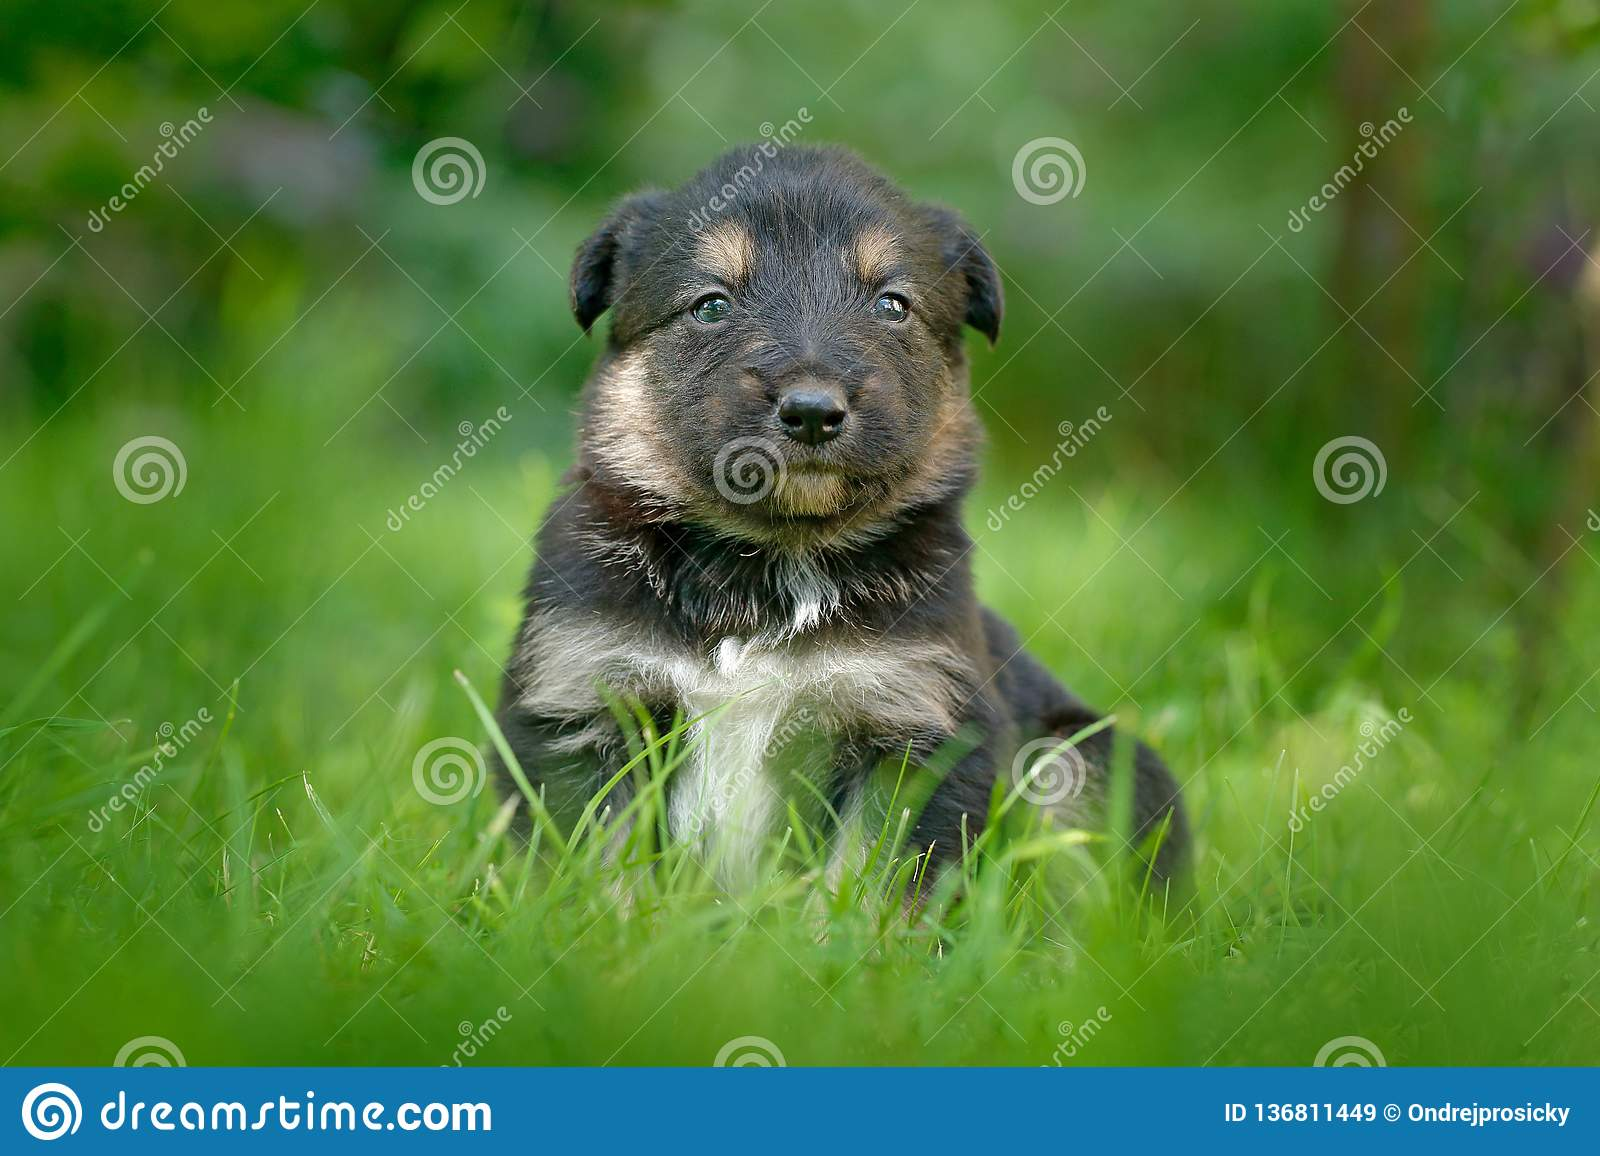 Cute dog pup sitting in the green grass. Animal in the garden. Unhappy young cub dog without mother. Small whelp with tip up ears